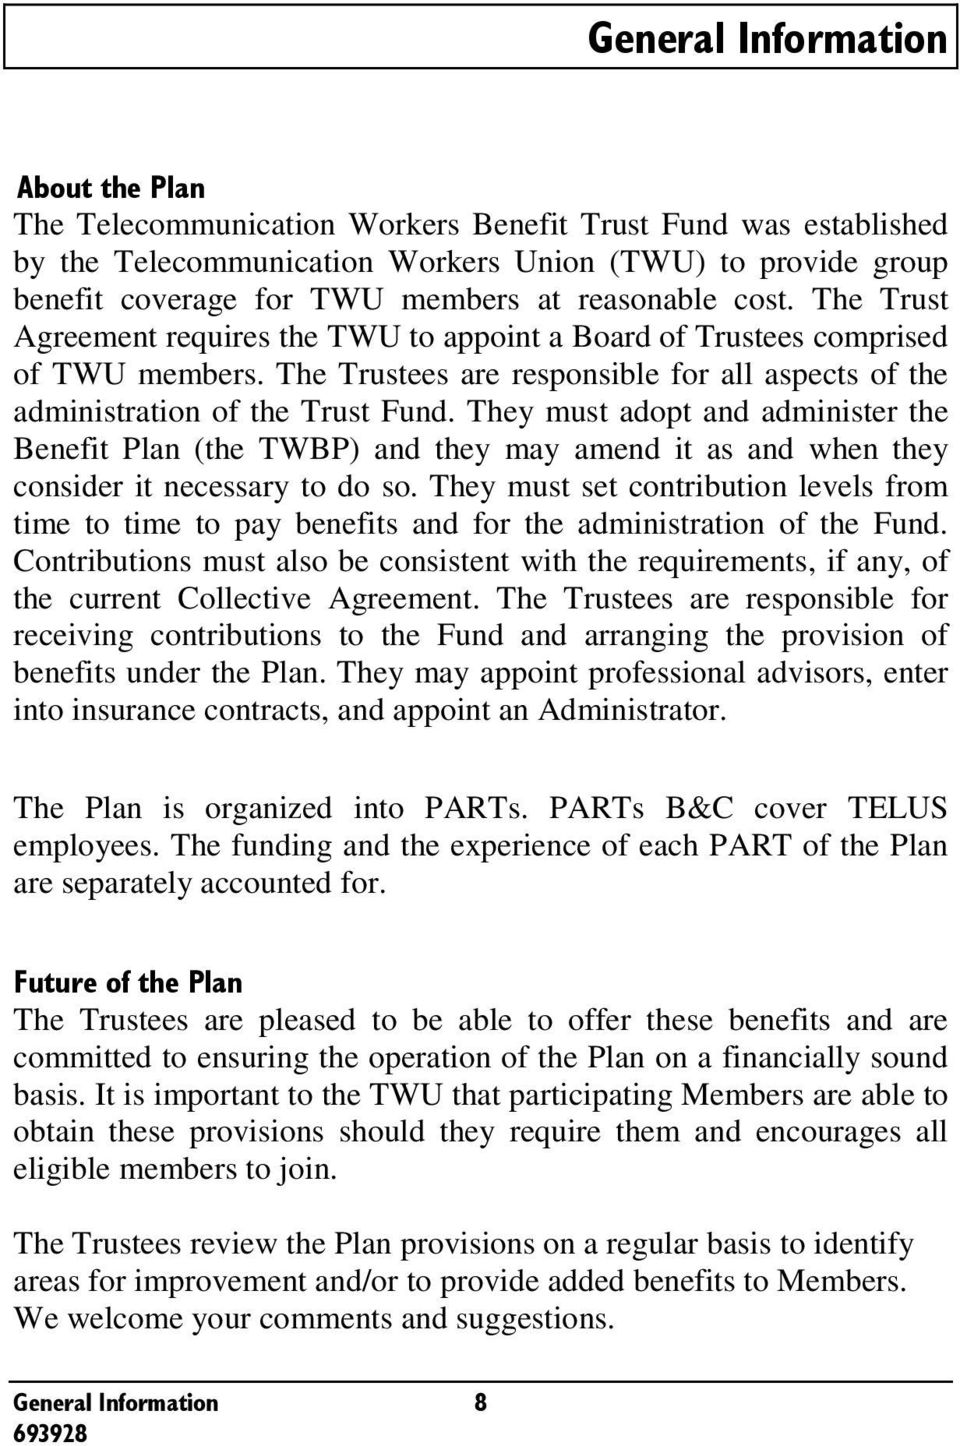 They must adopt and administer the Benefit Plan (the TWBP) and they may amend it as and when they consider it necessary to do so.